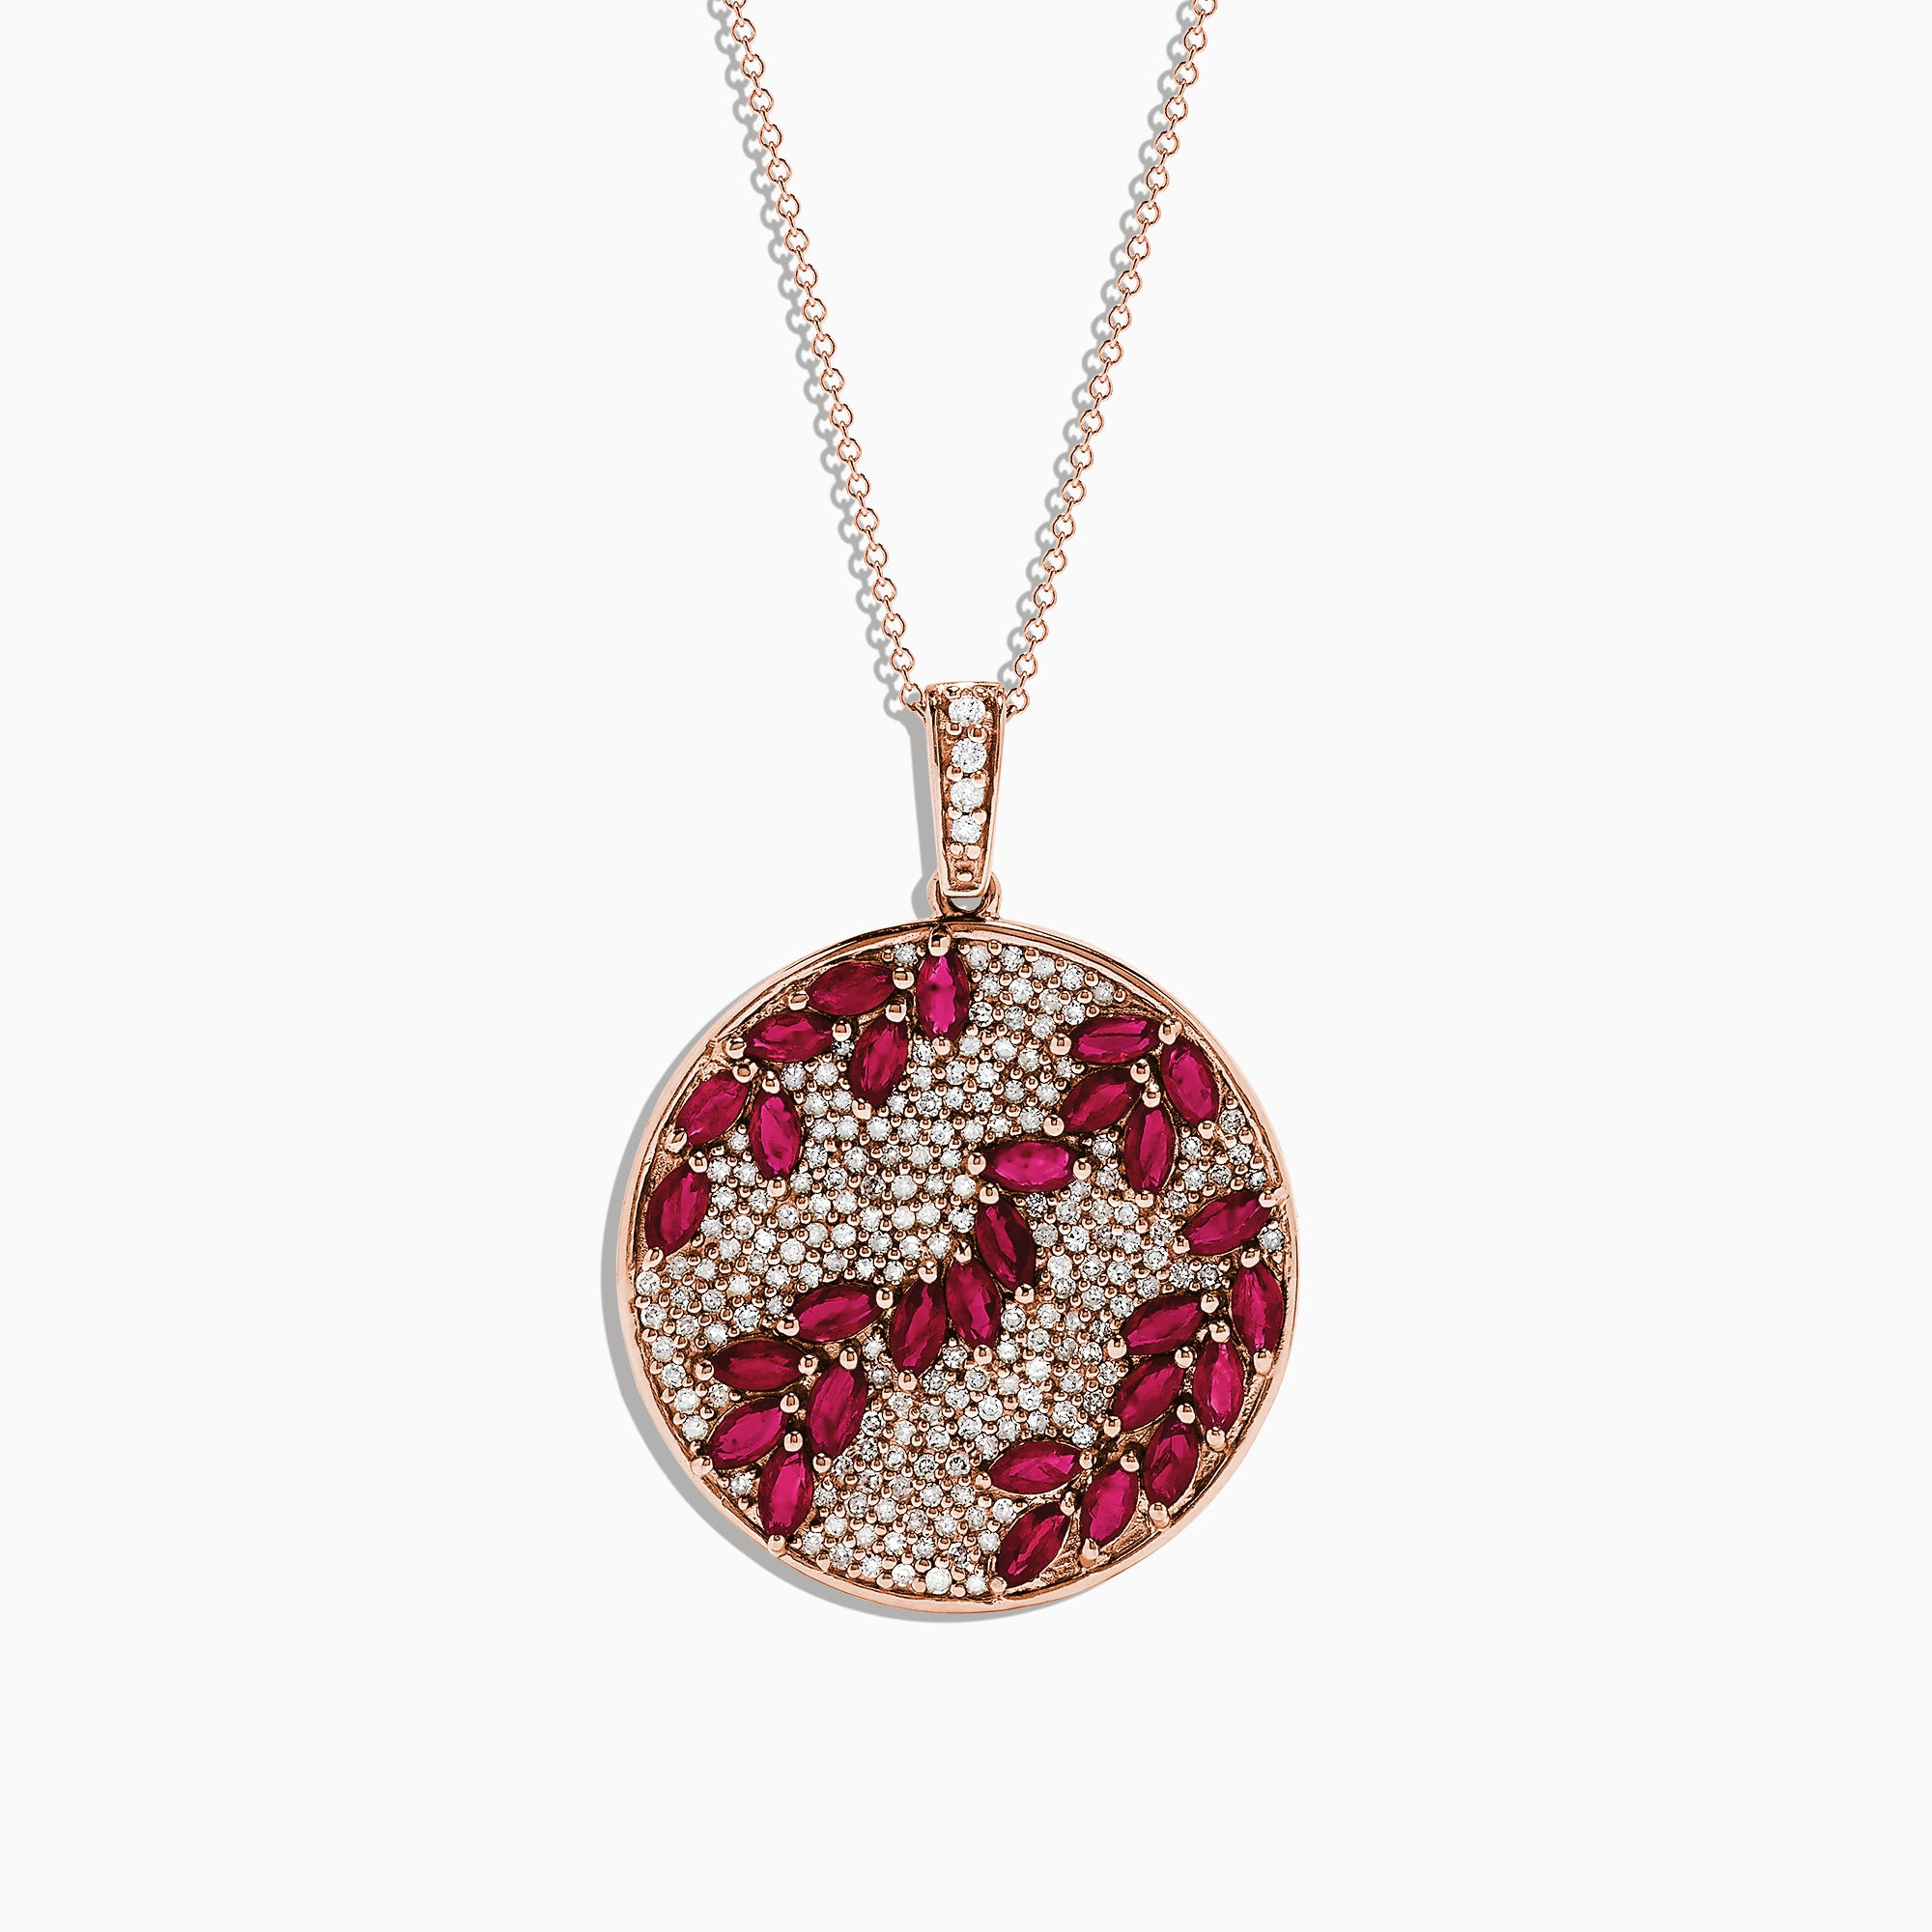 Effy 14K Rose Gold Natural Ruby and Diamond Pendant, 4.26 TCW